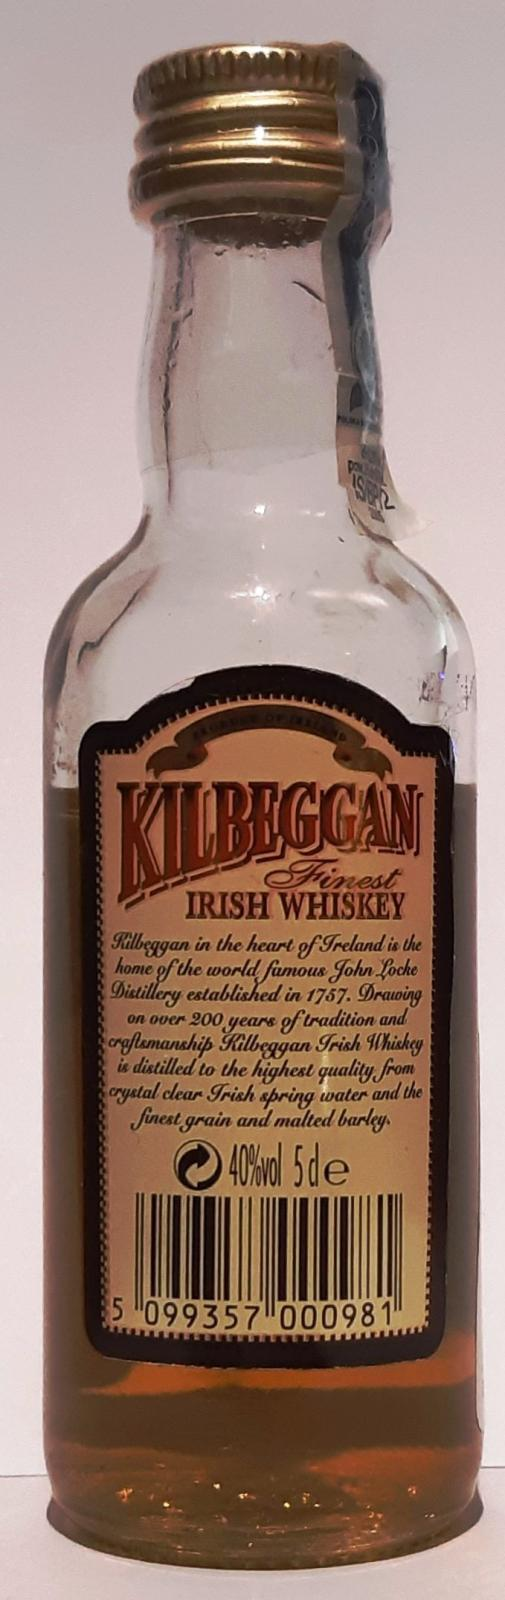 Kilbeggan Finest Irish Whiskey